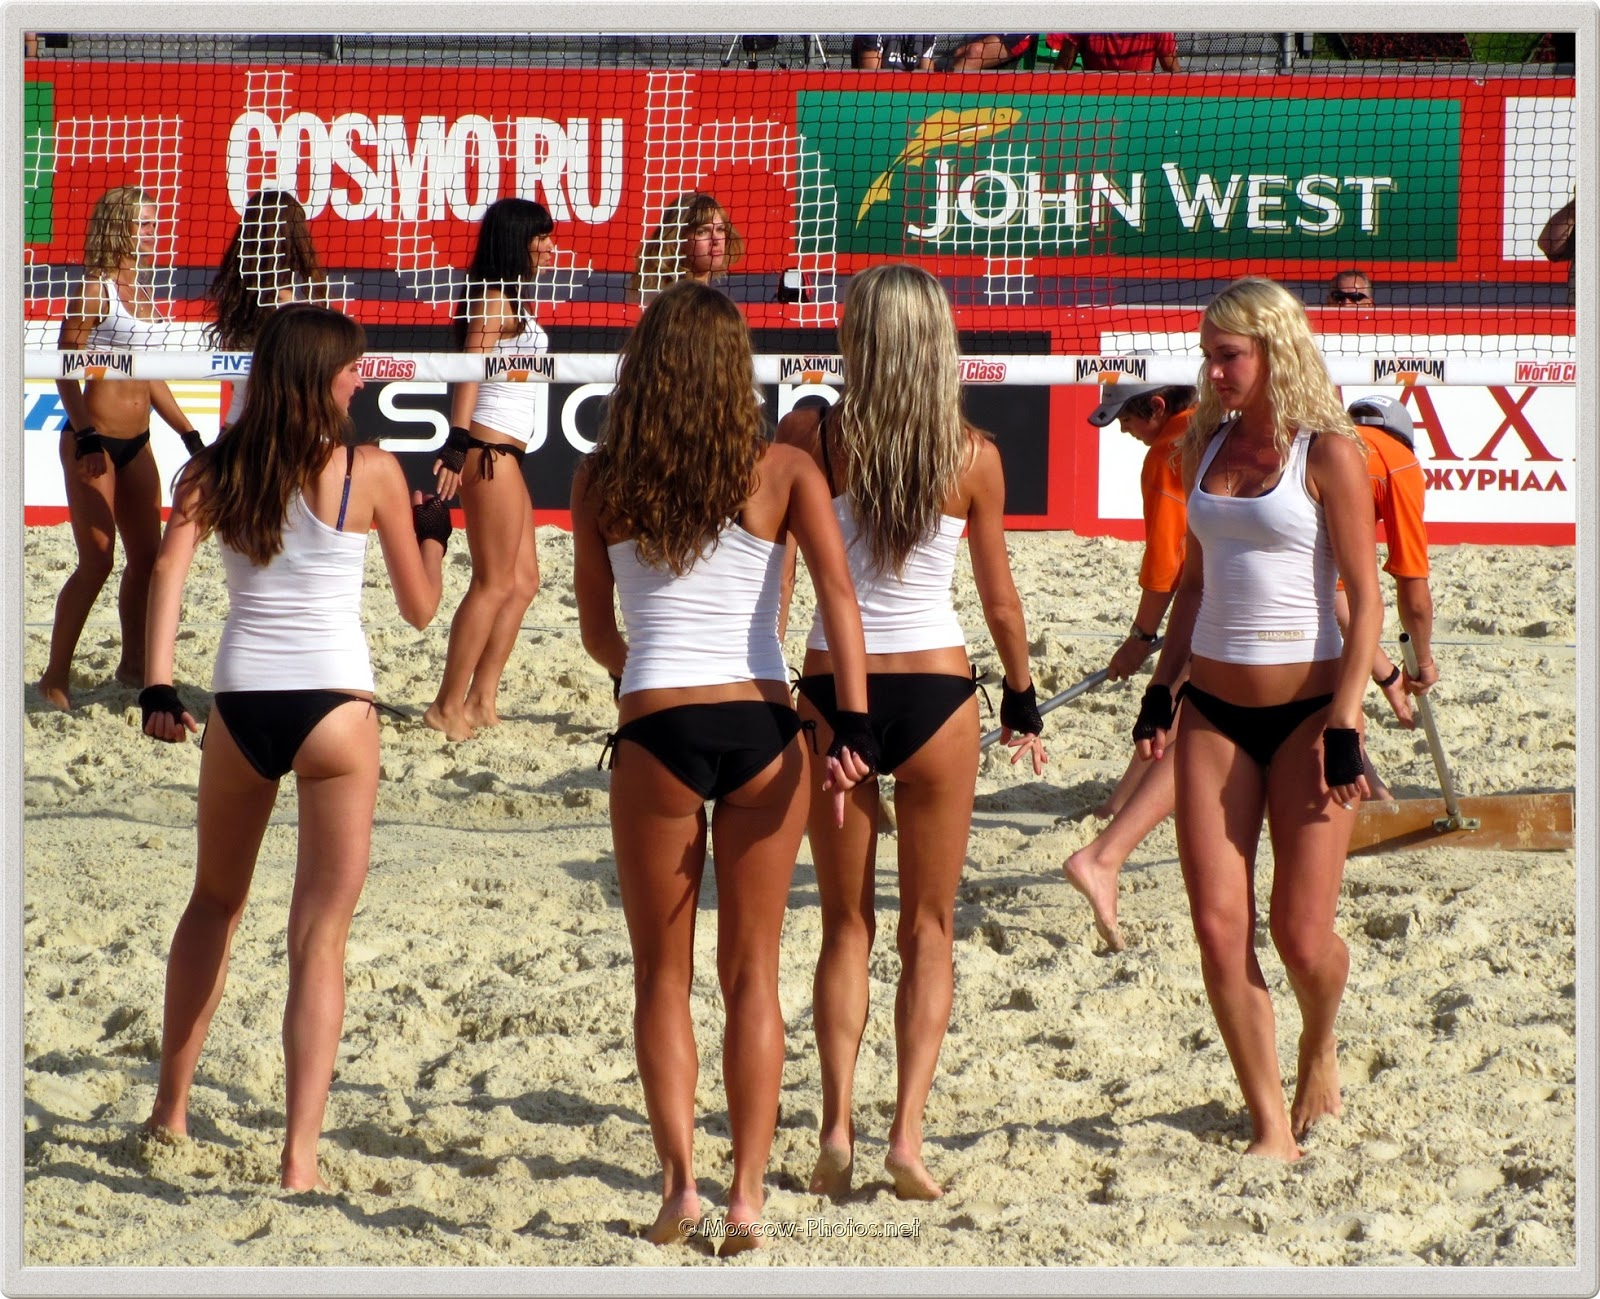 Beach Volleyball Cheerleaders In White Tops